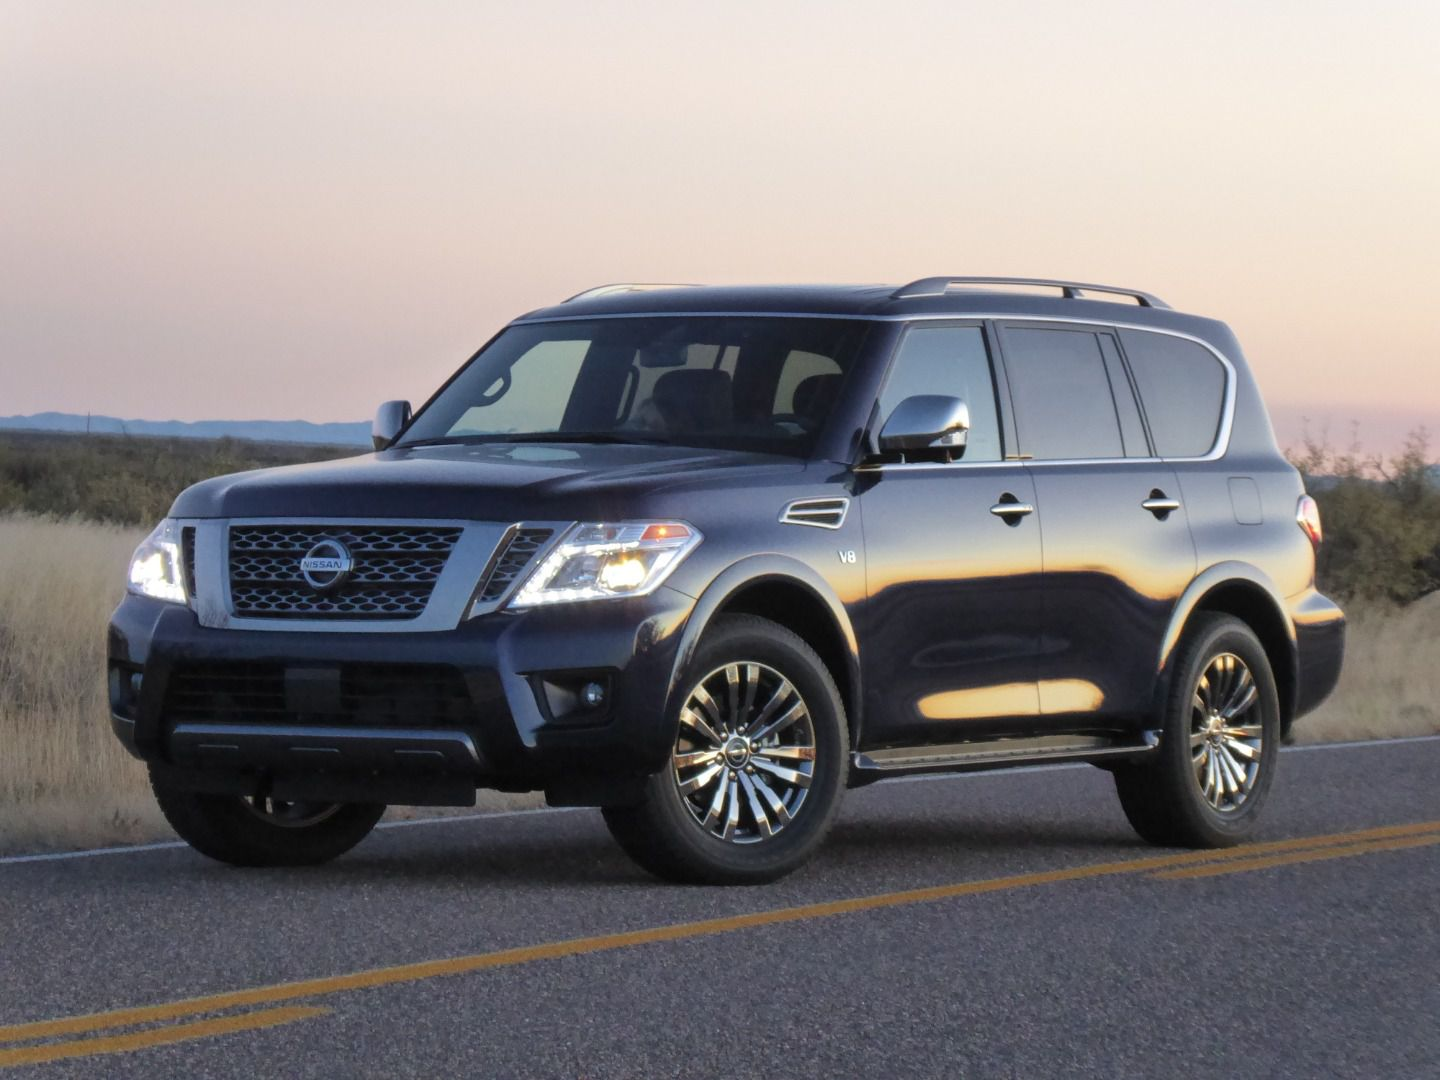 2019 Nissan Armada Road Test and Review